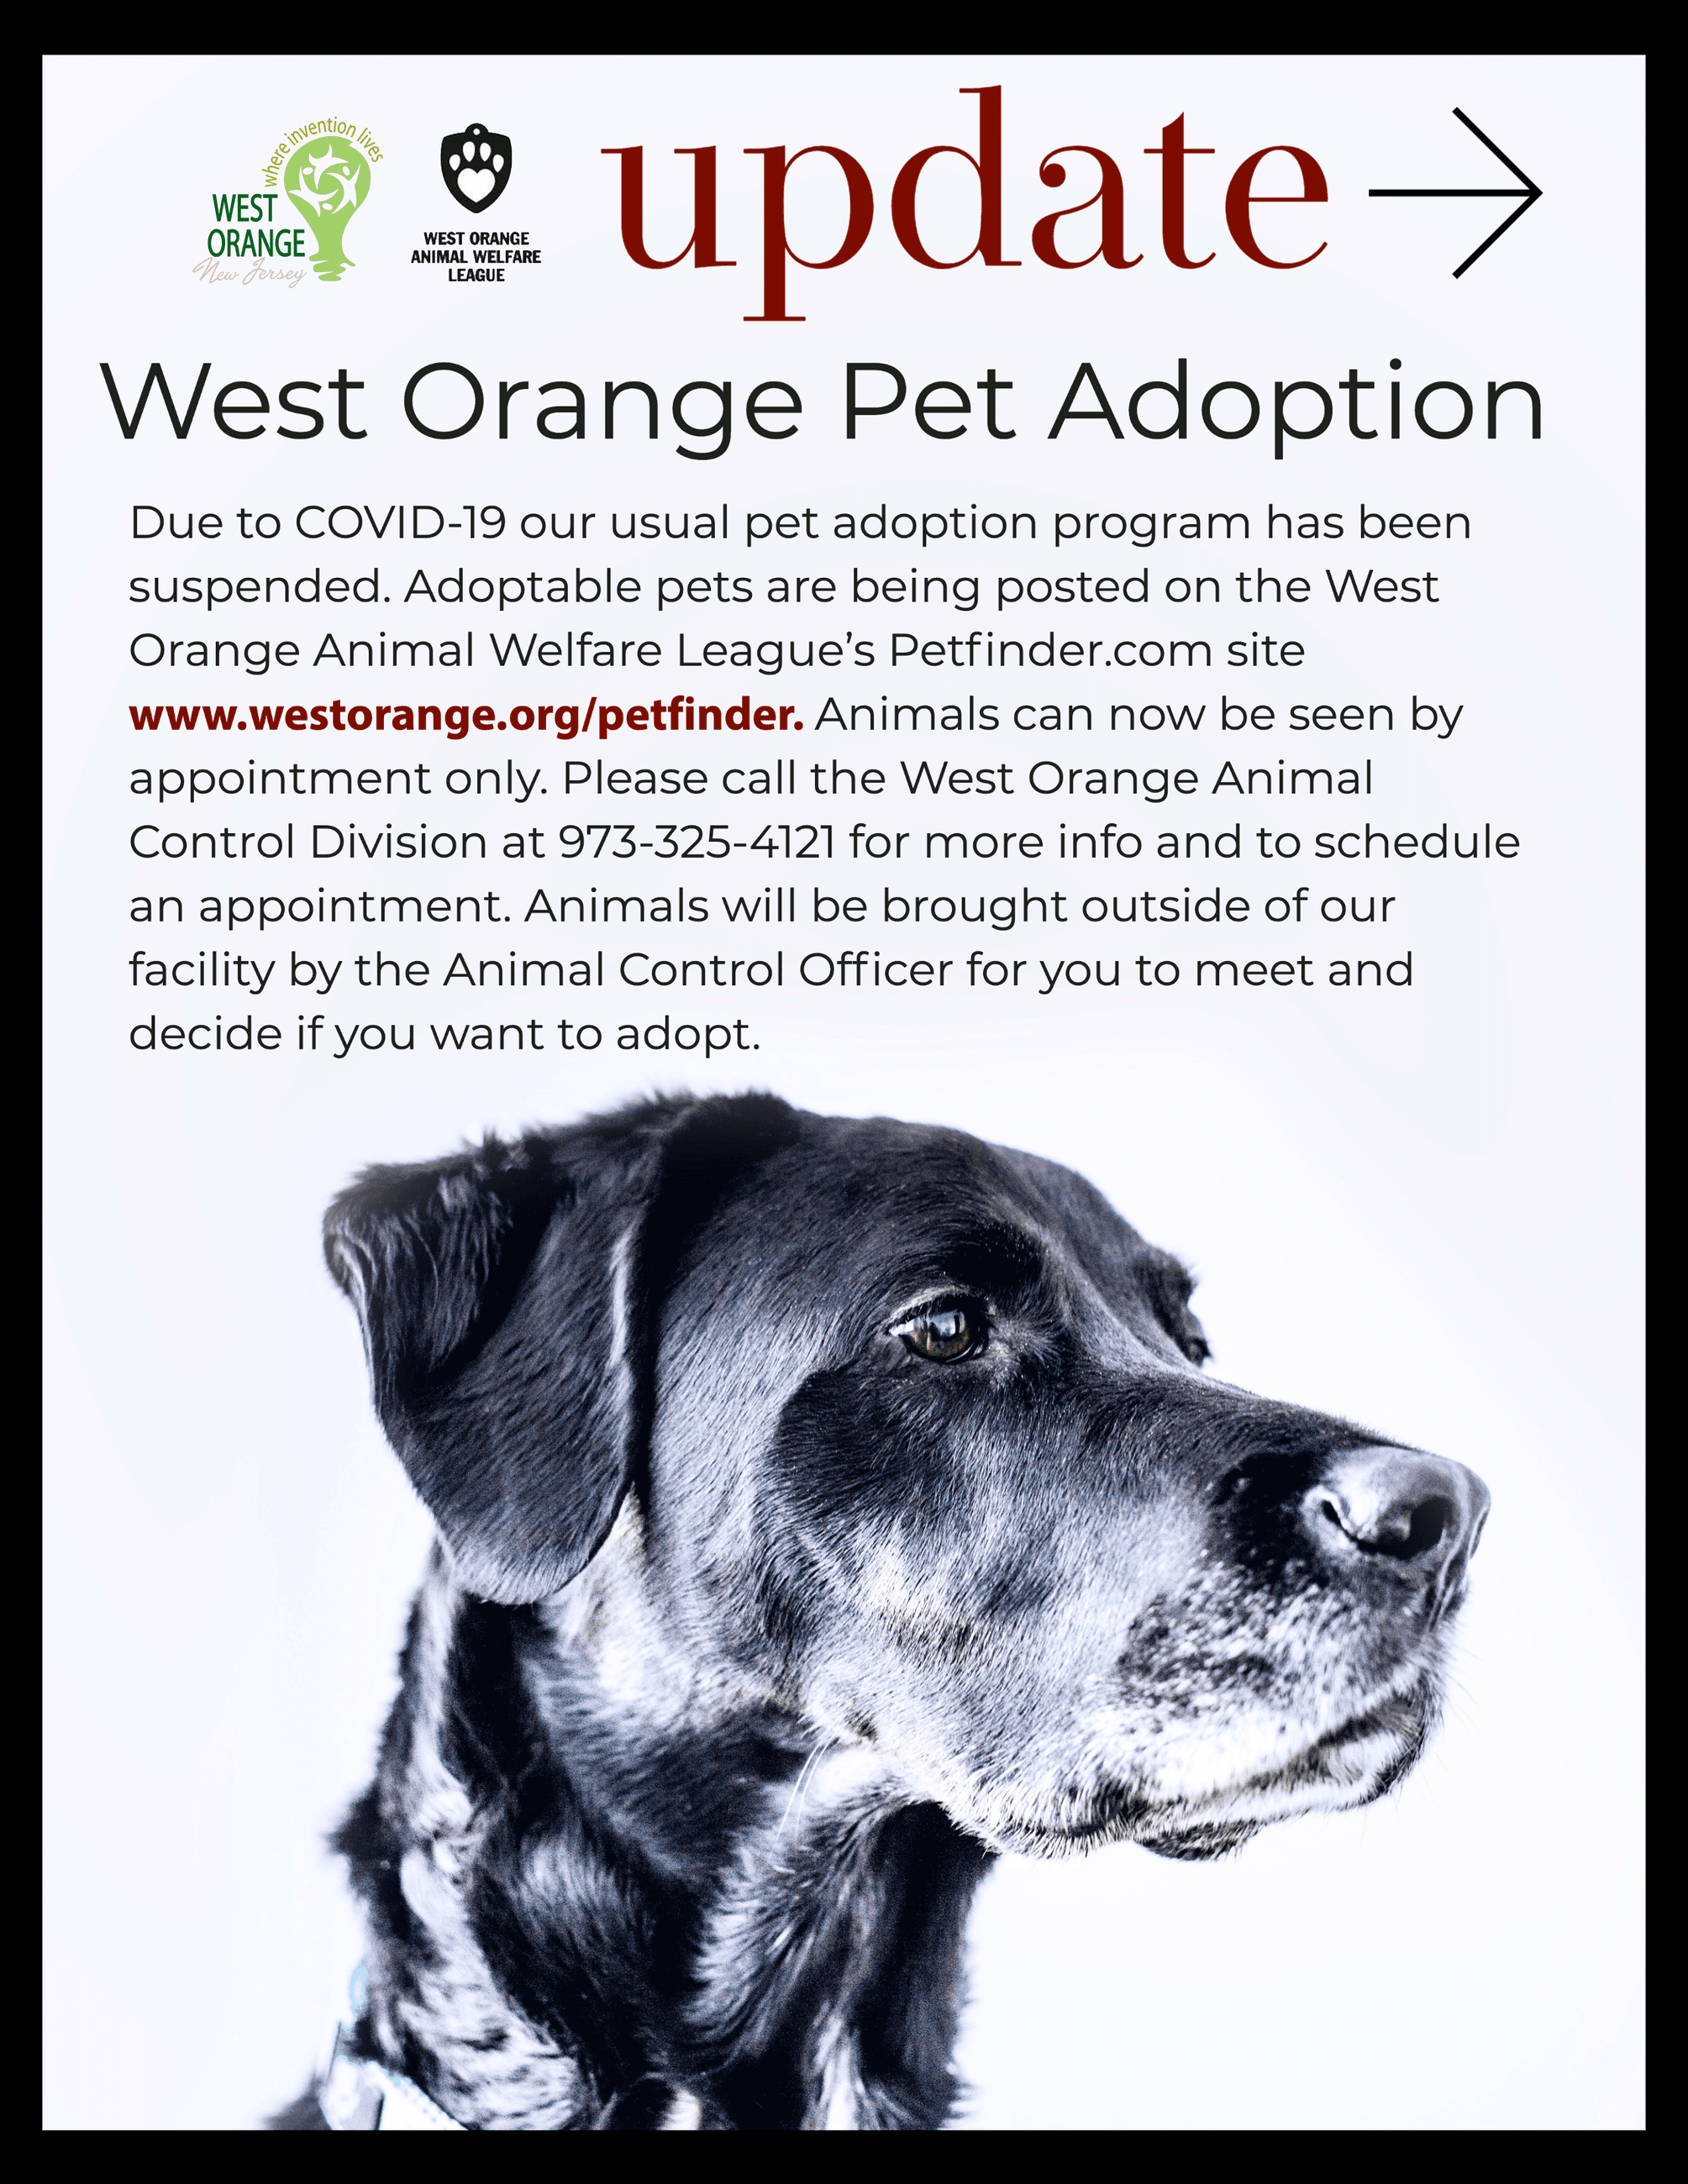 WO-Pet-Adoption-Jan2021